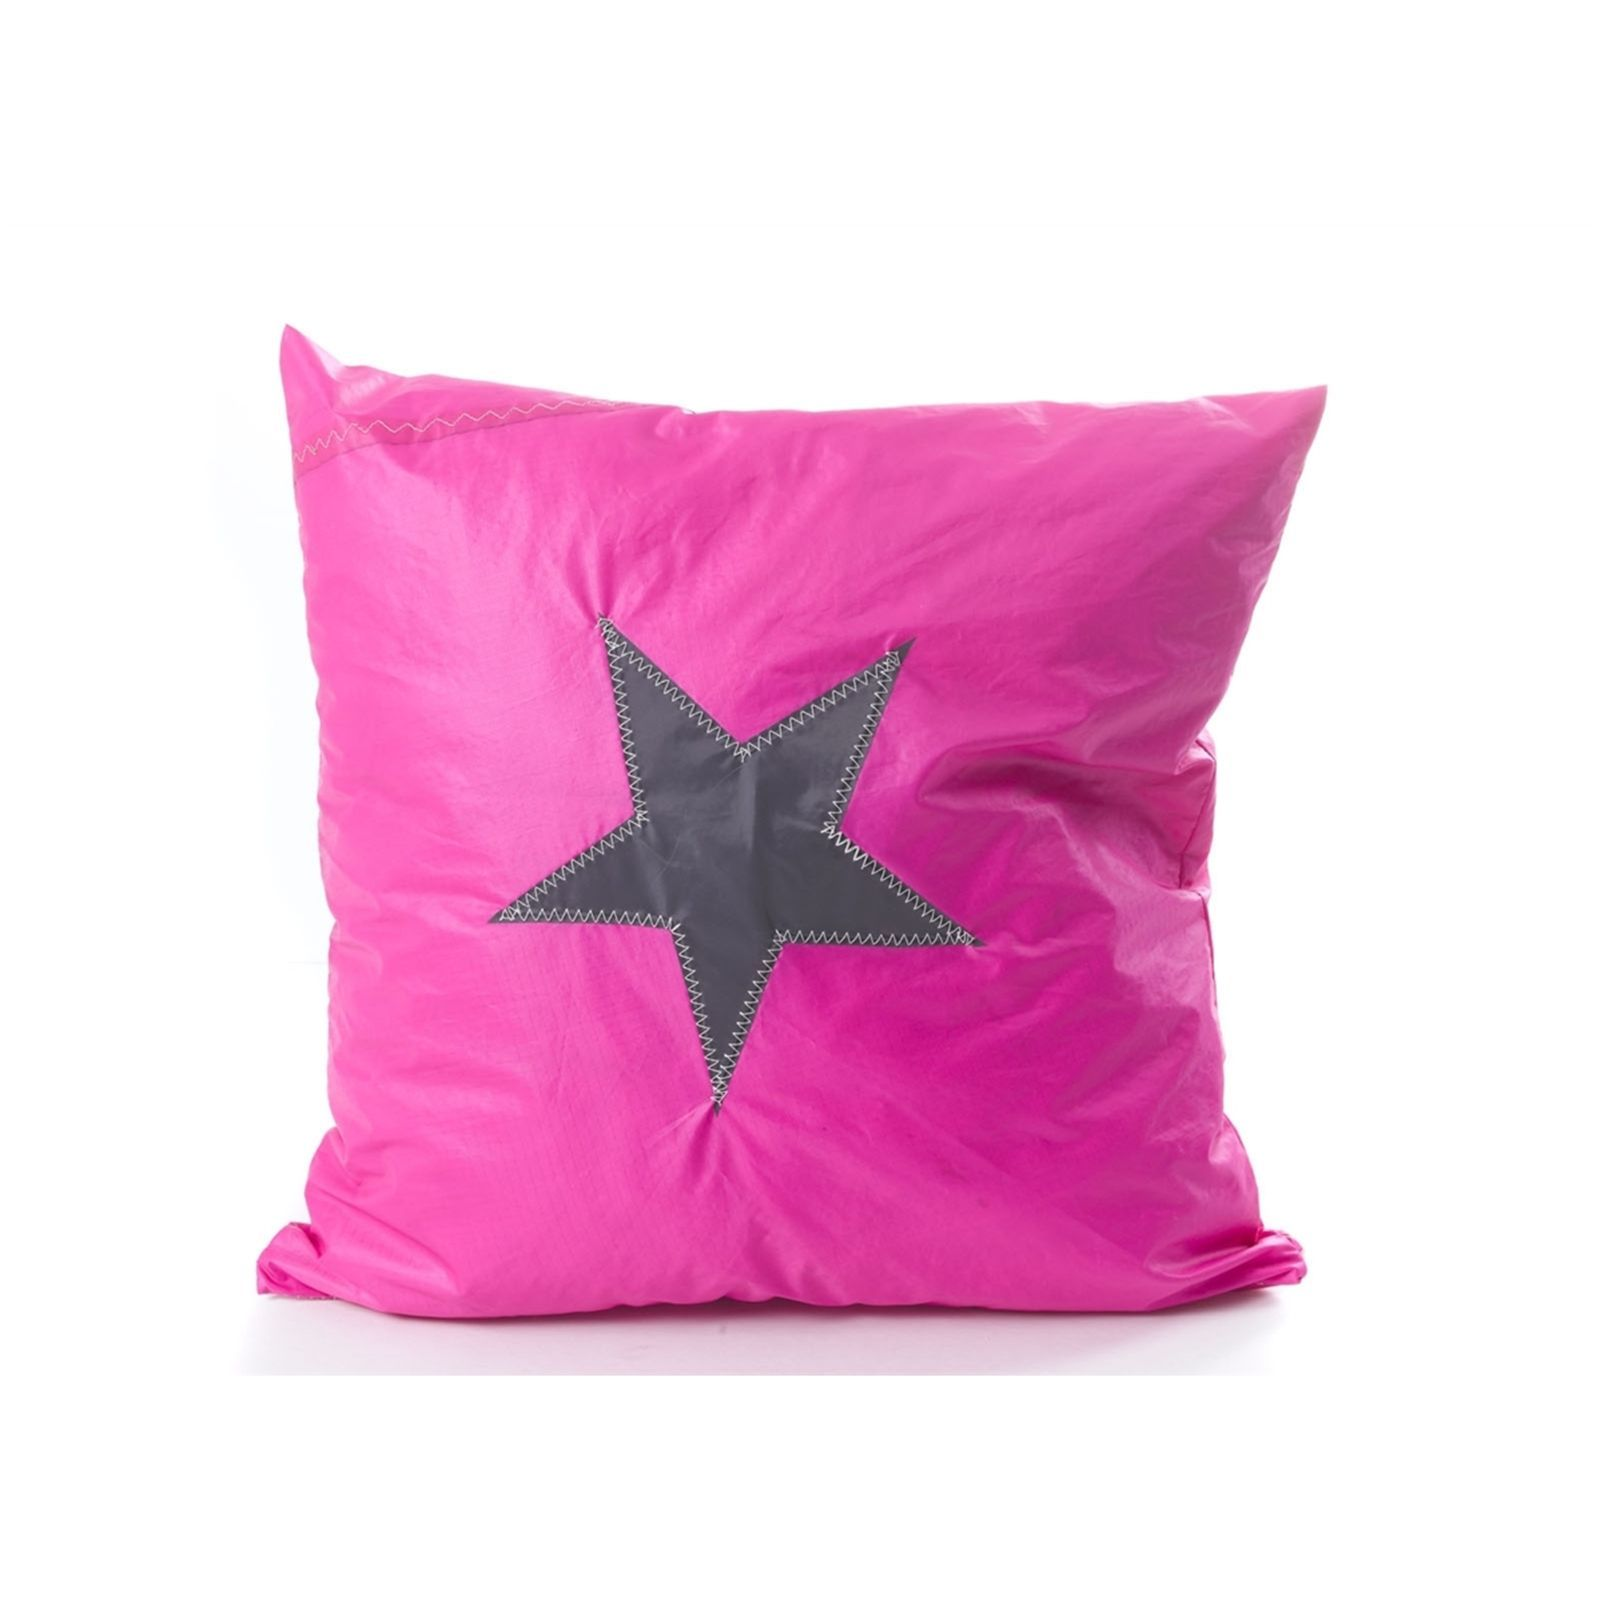 727 Sailbags coussin - rose